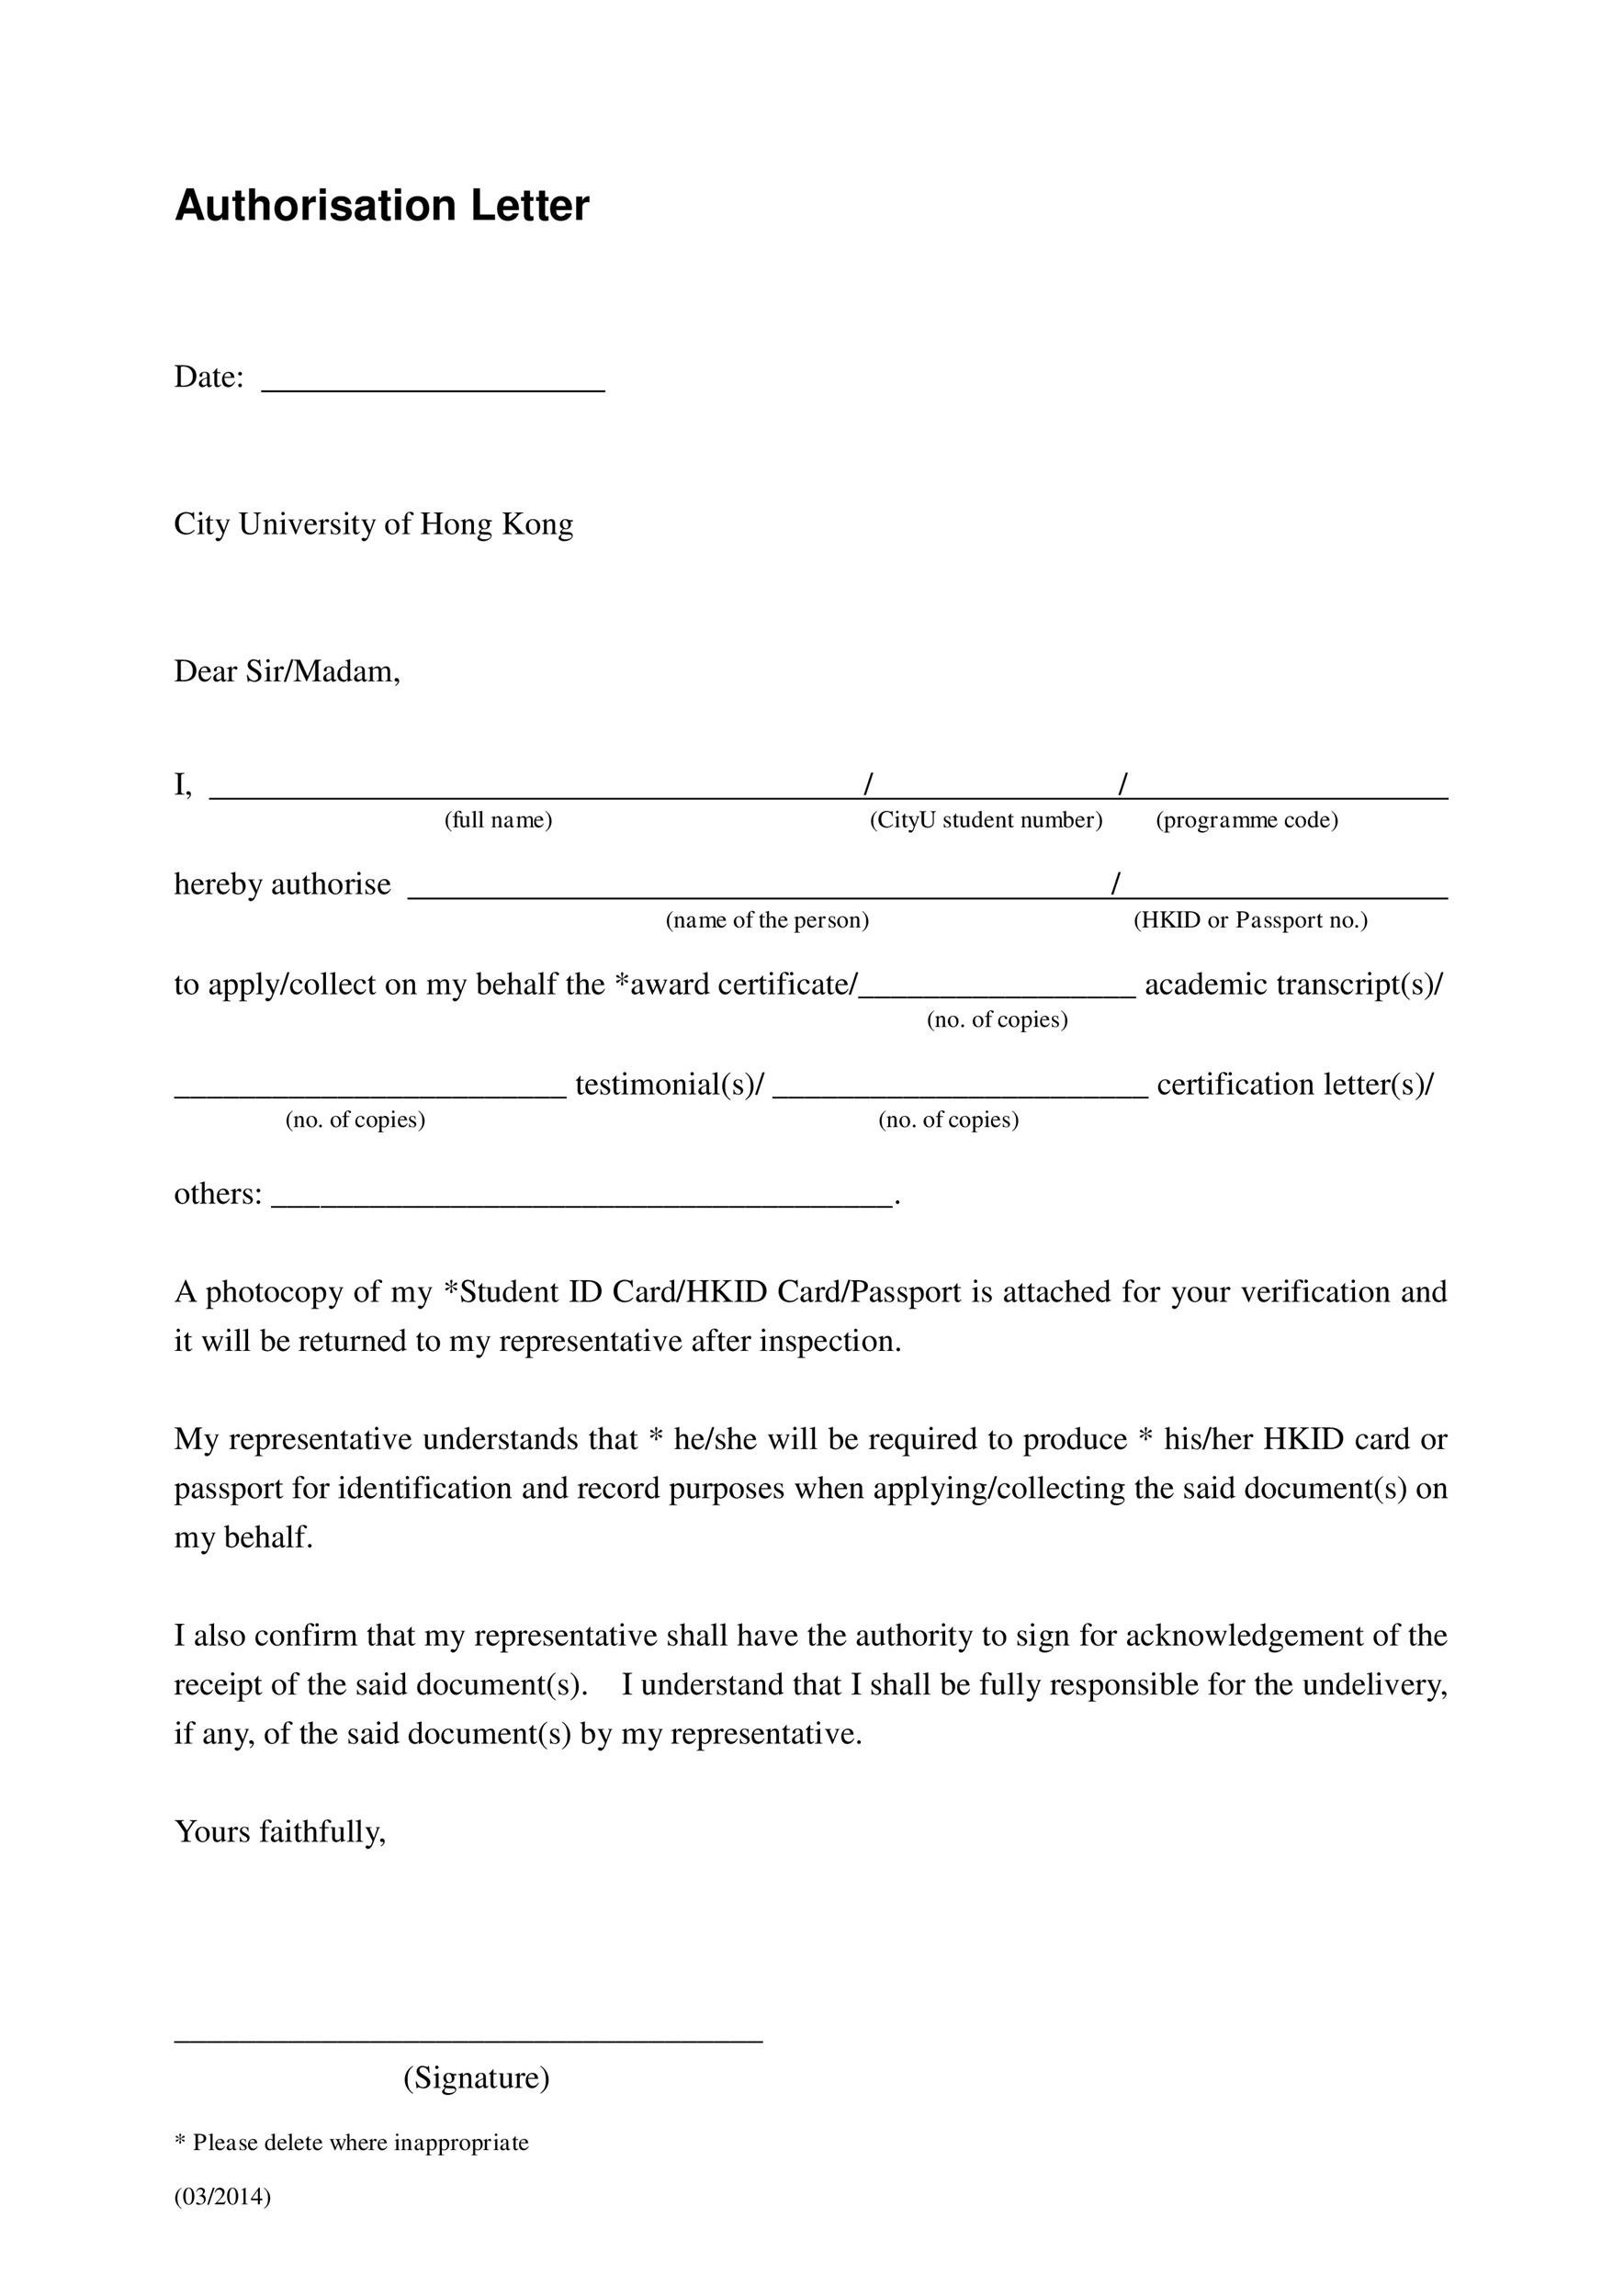 Free Authorization Letter 38